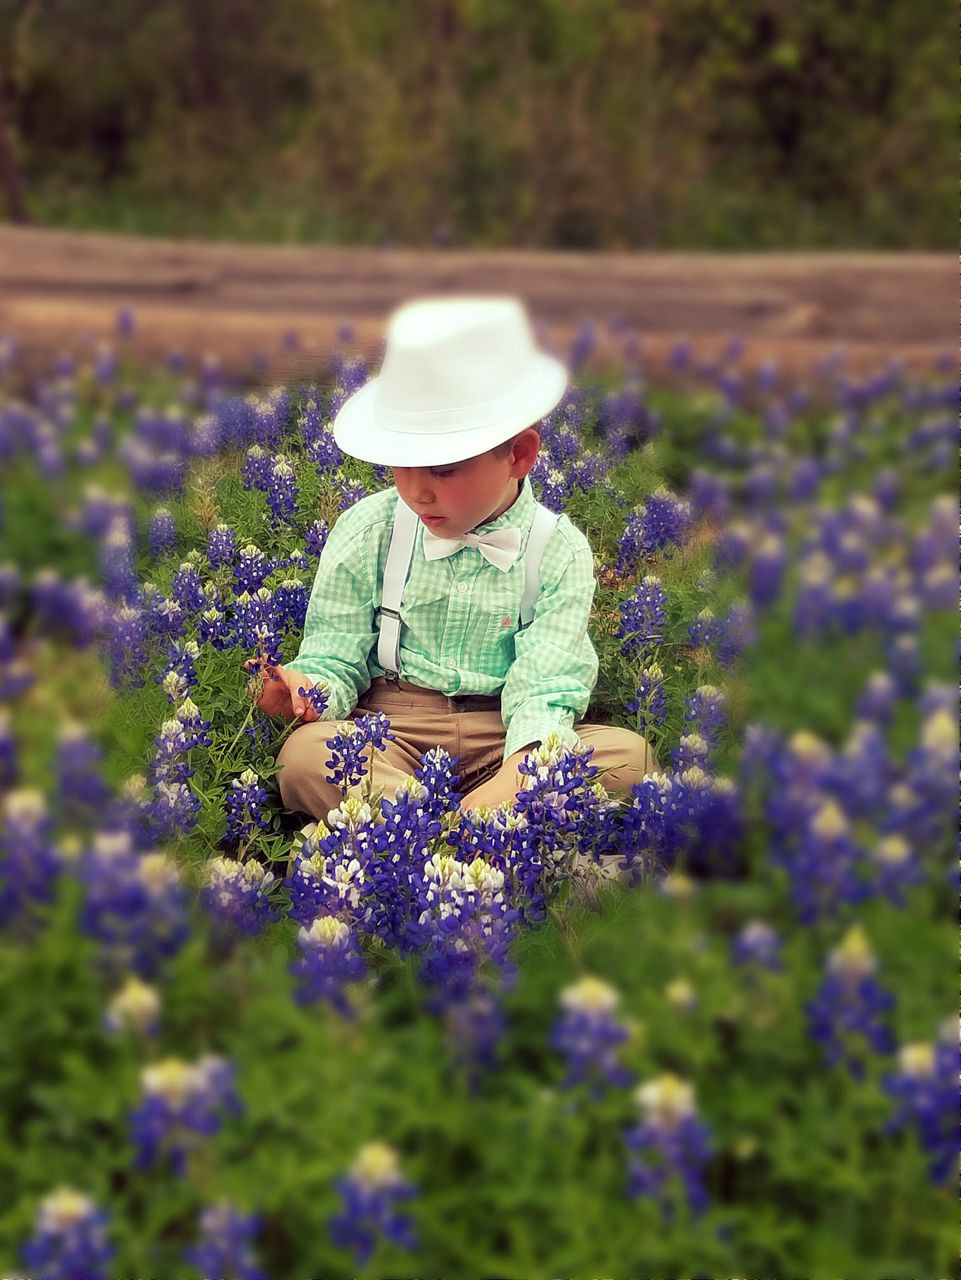 Boy in the wildflowers.